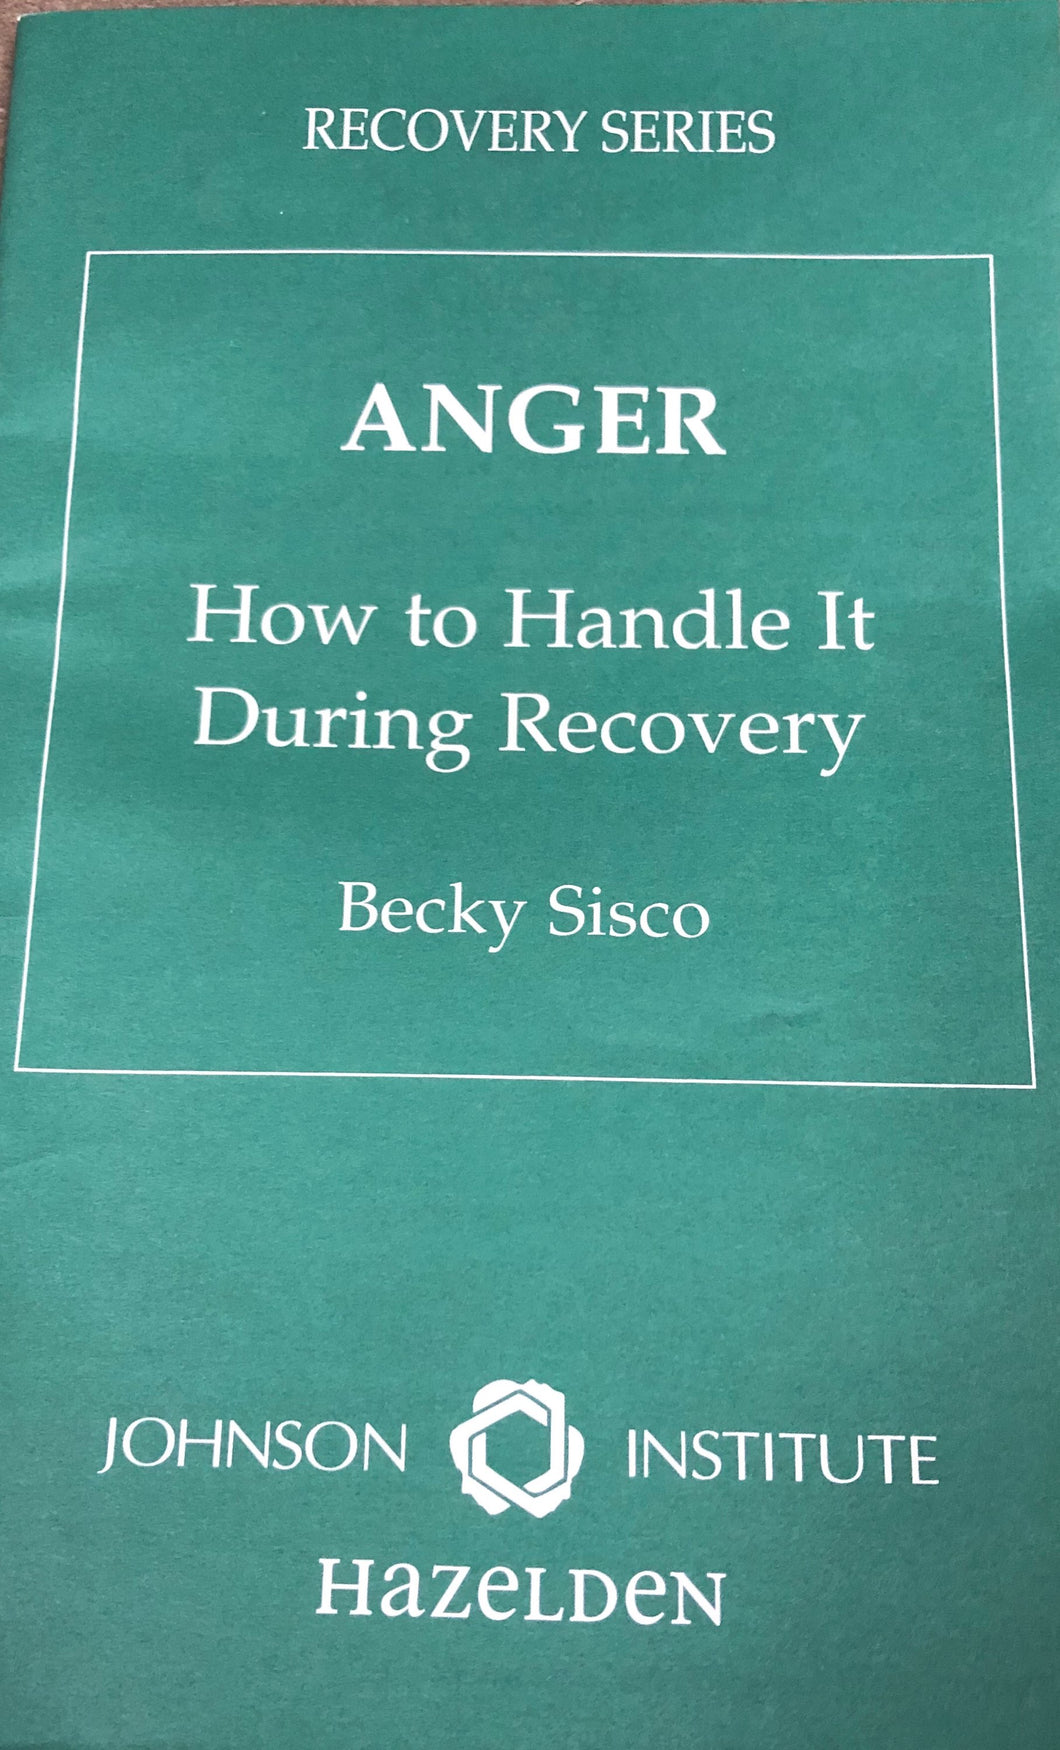 Anger: How to Handle It